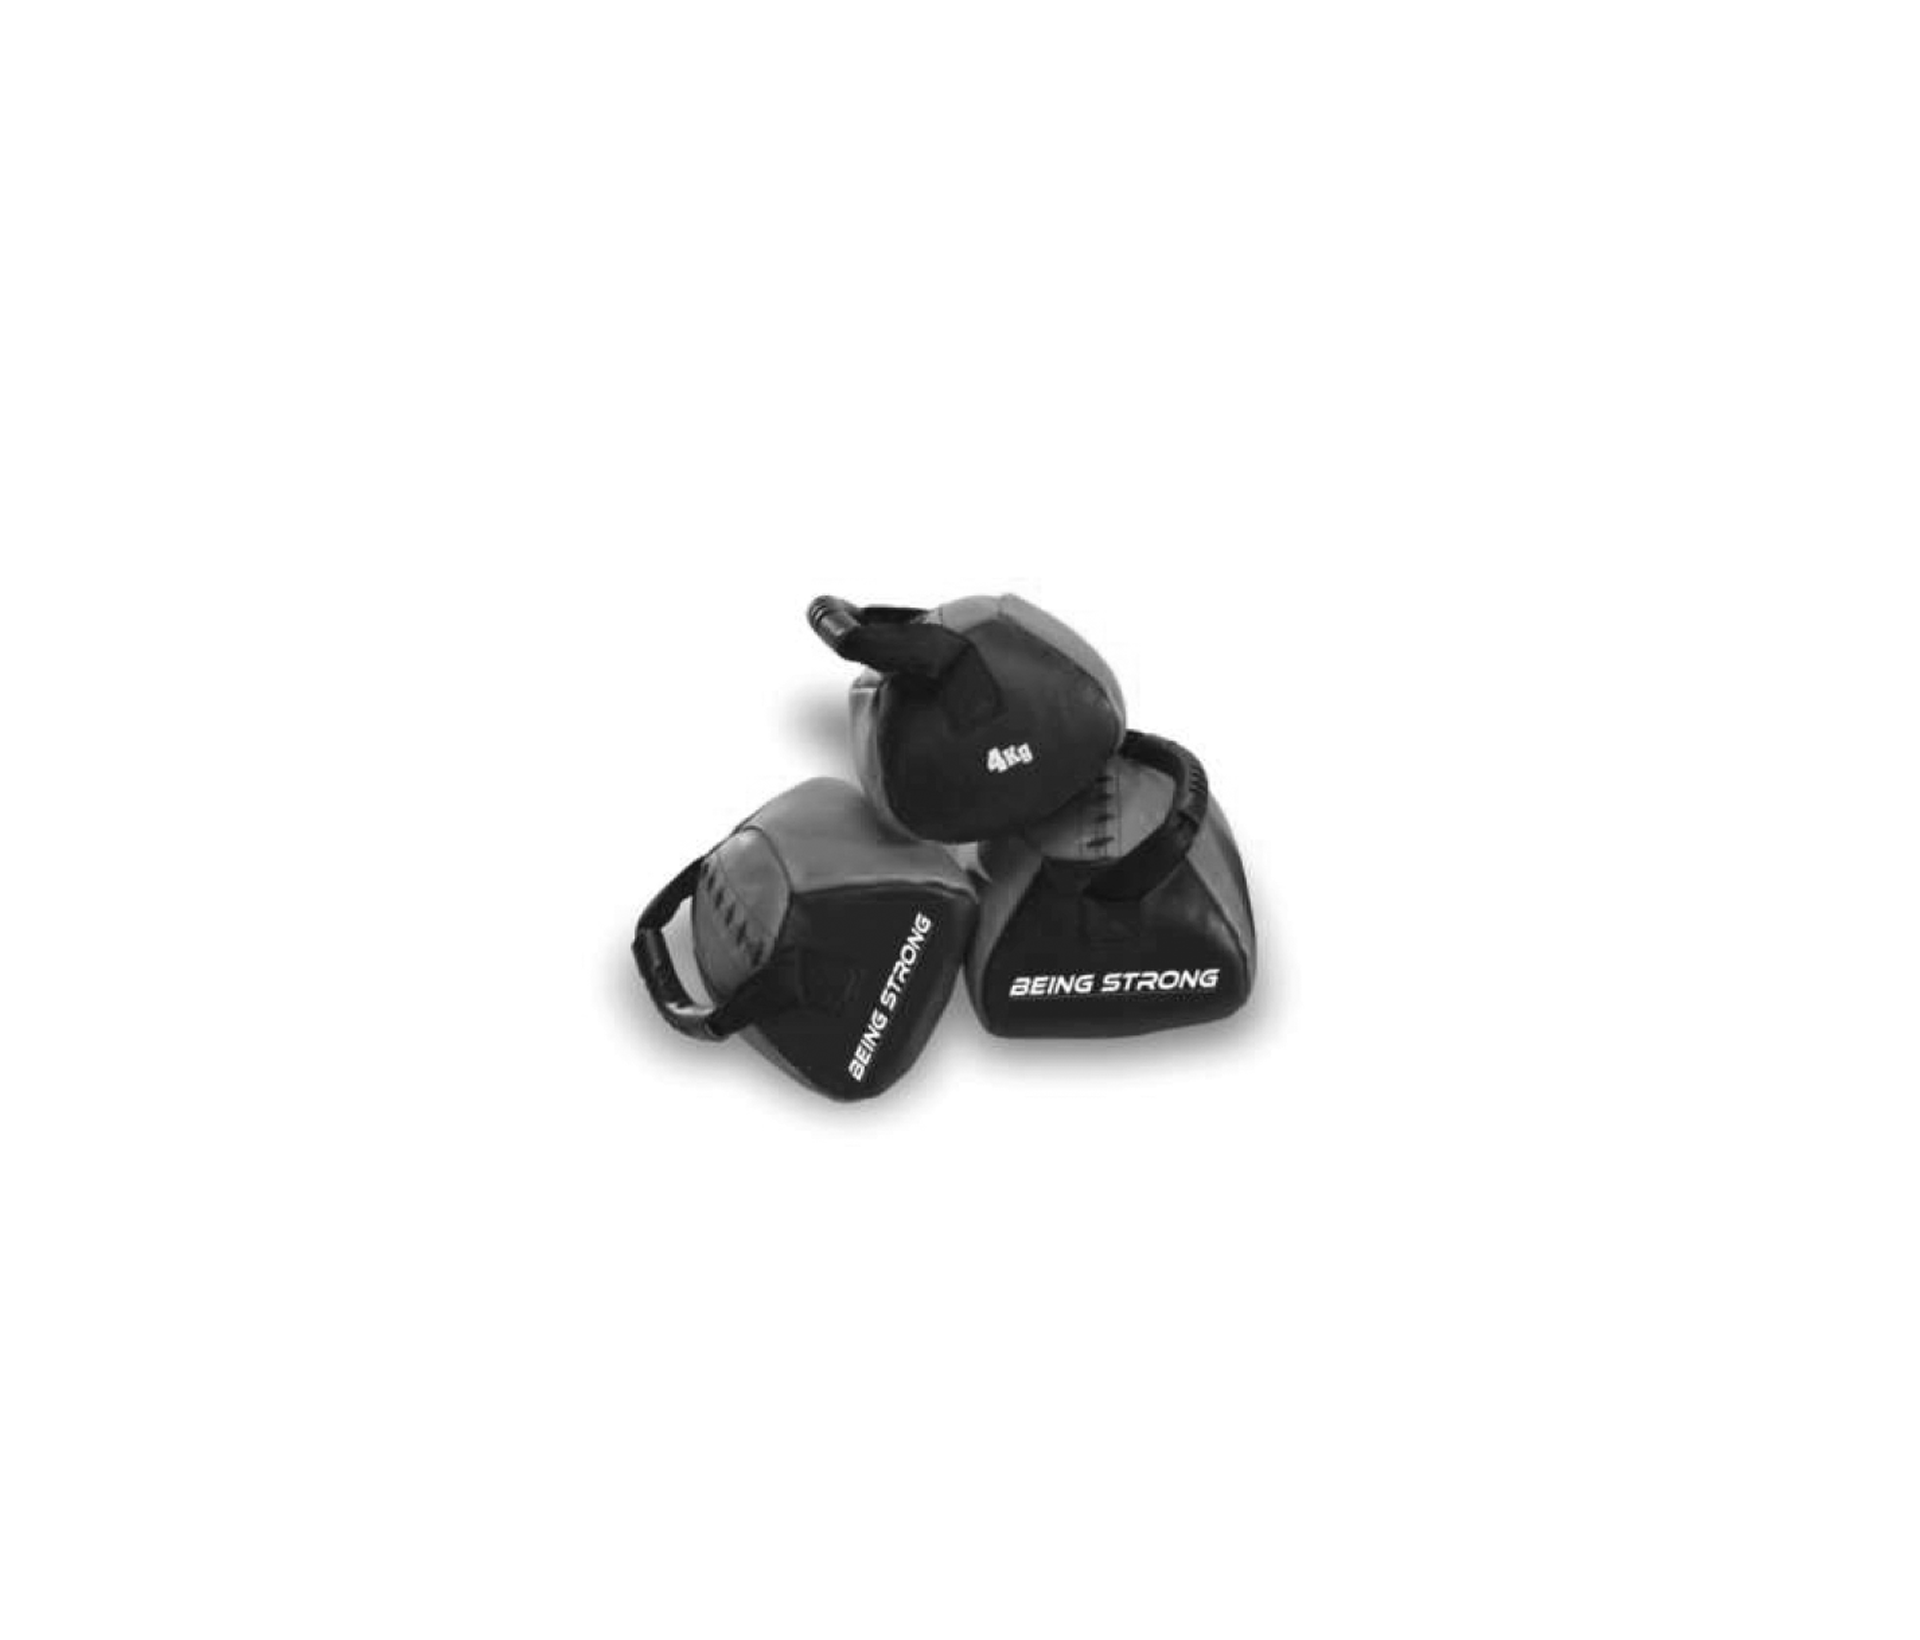 LEATHER KETTLE BELL SET